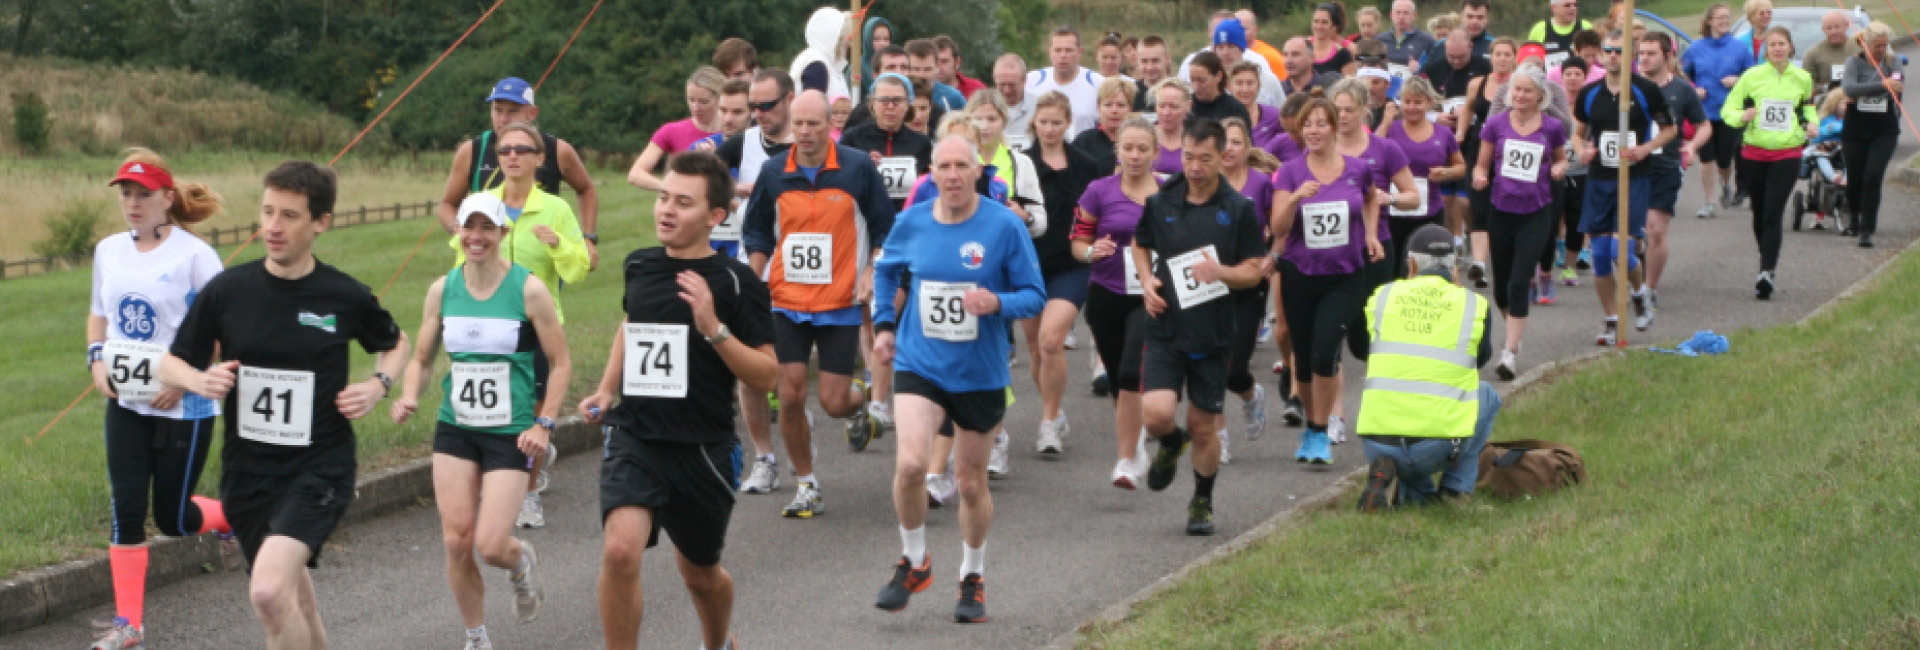 Draycote Water 10K - The Myton Hospices - Challenge Event